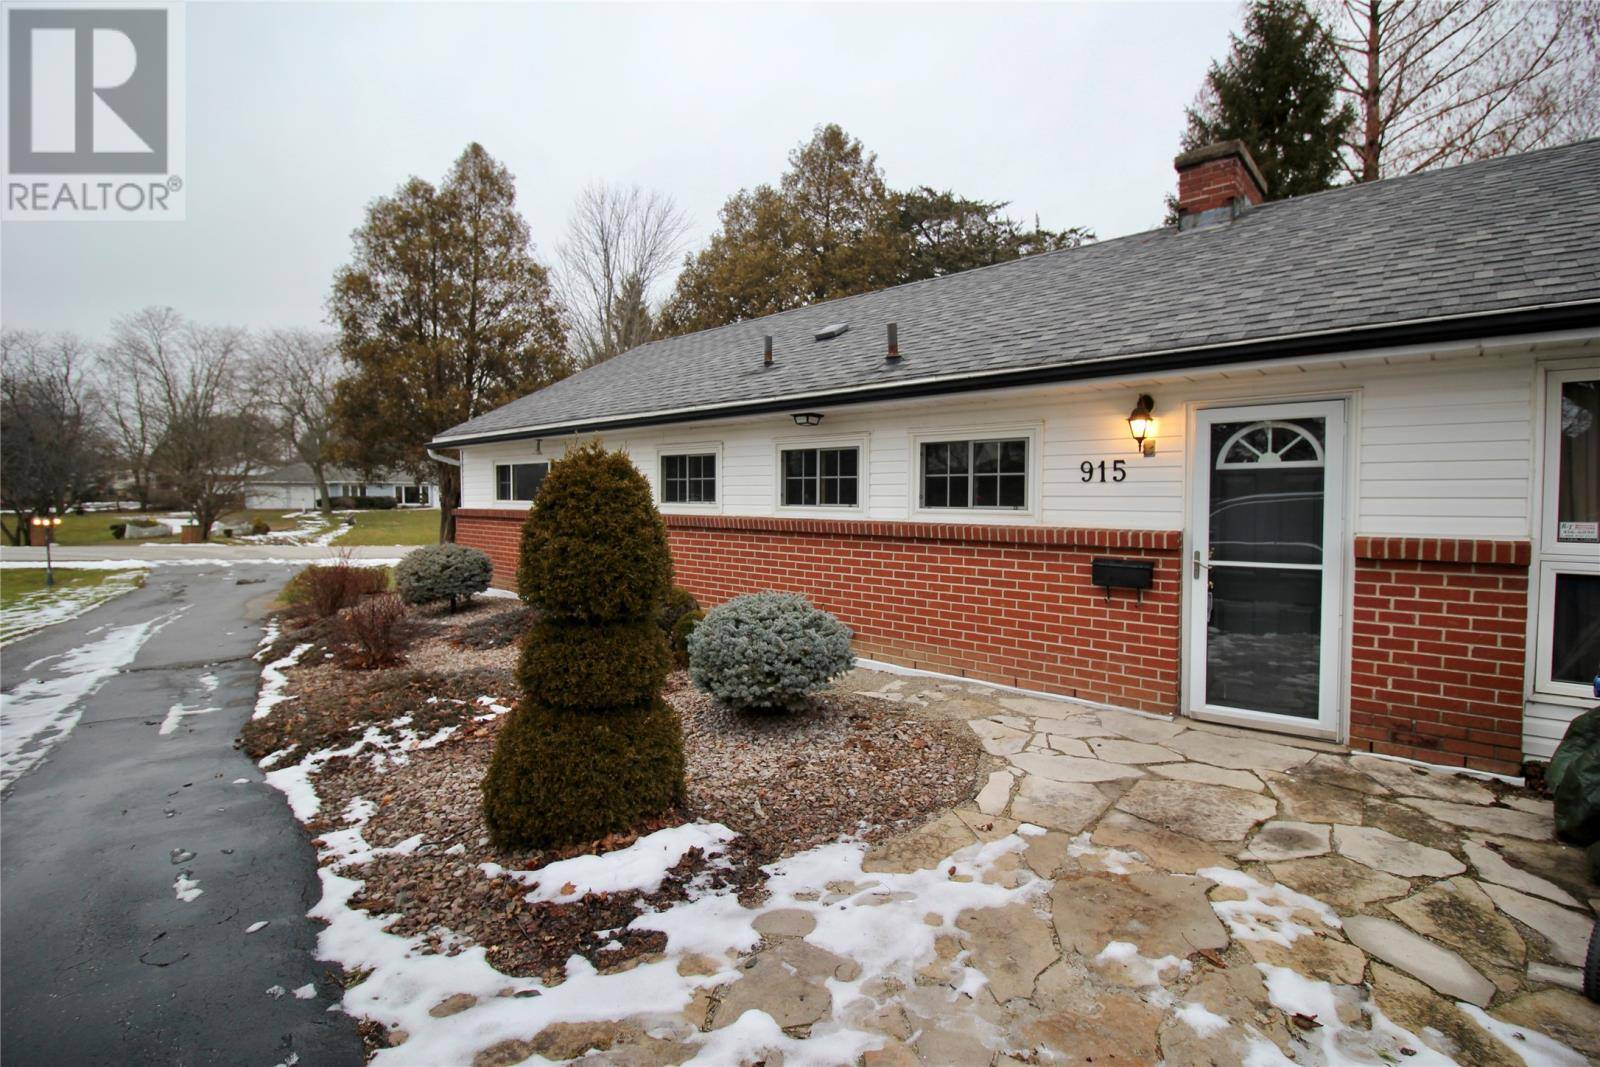 House for sale at 915 Charing Cross Rd Chatham Ontario - MLS: 20000903